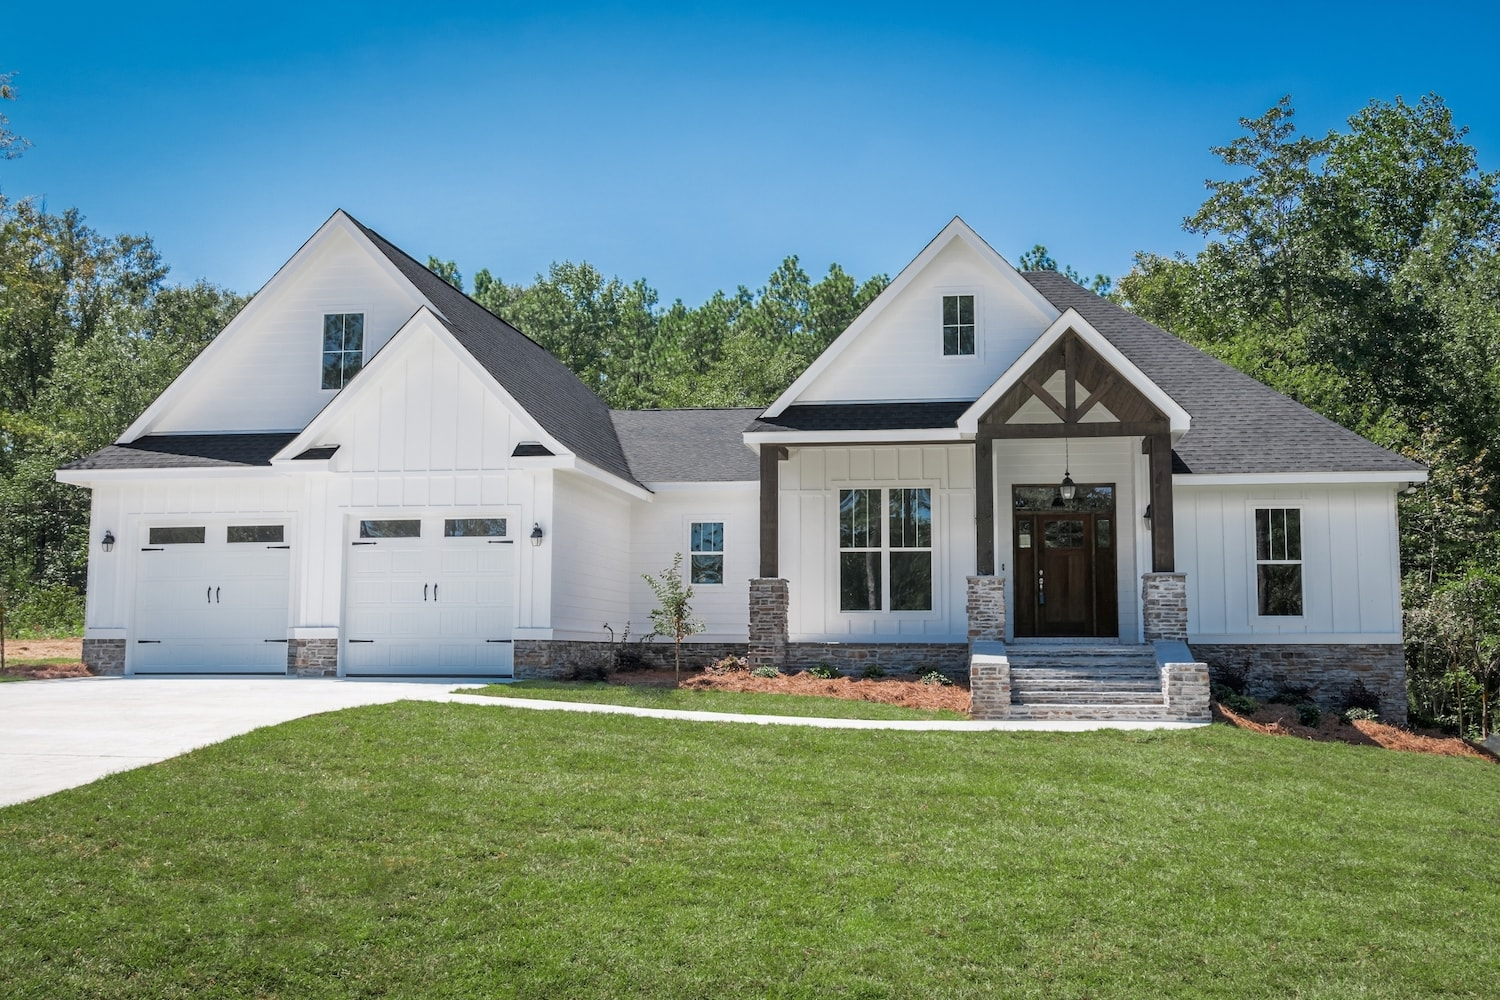 3 Bedrm 2073 Sq Ft Country House Plan 142 1177